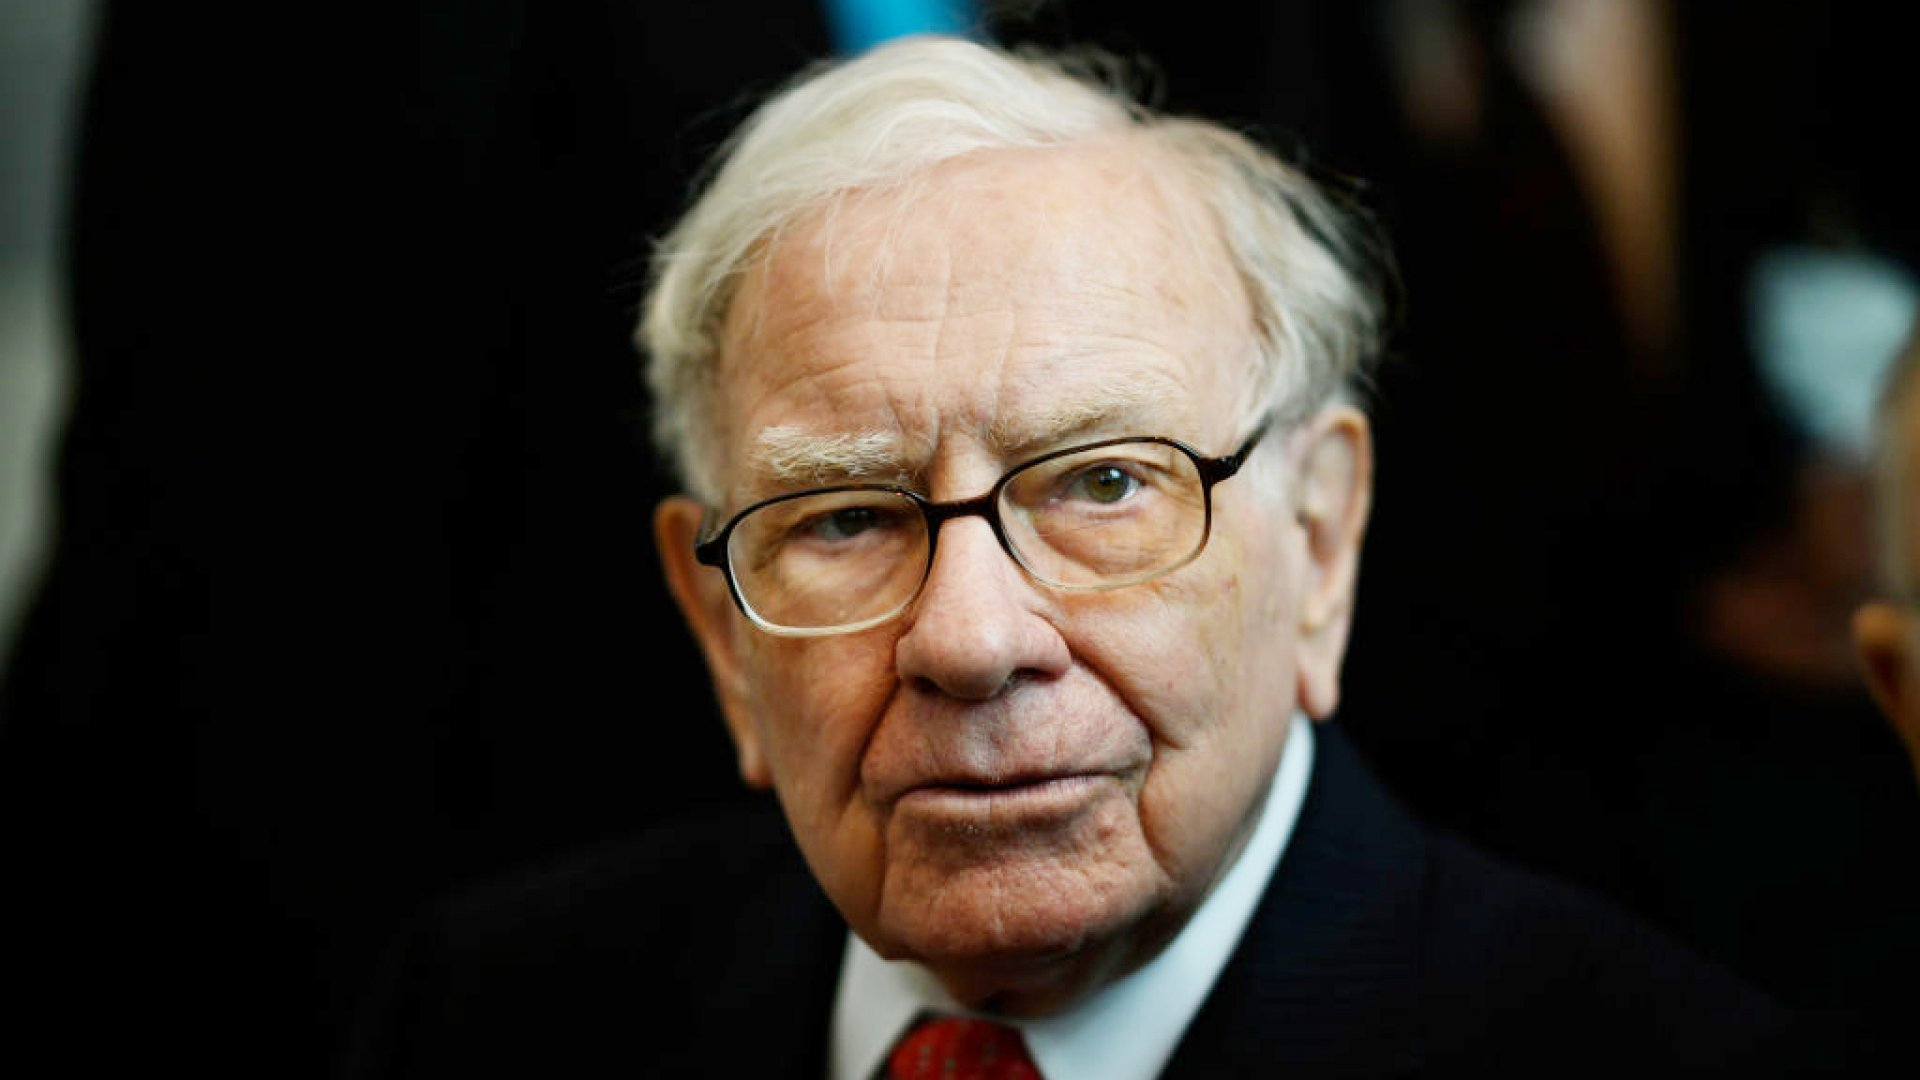 Warren Buffett: Don't Bother Hiring Anyone Without This Trait